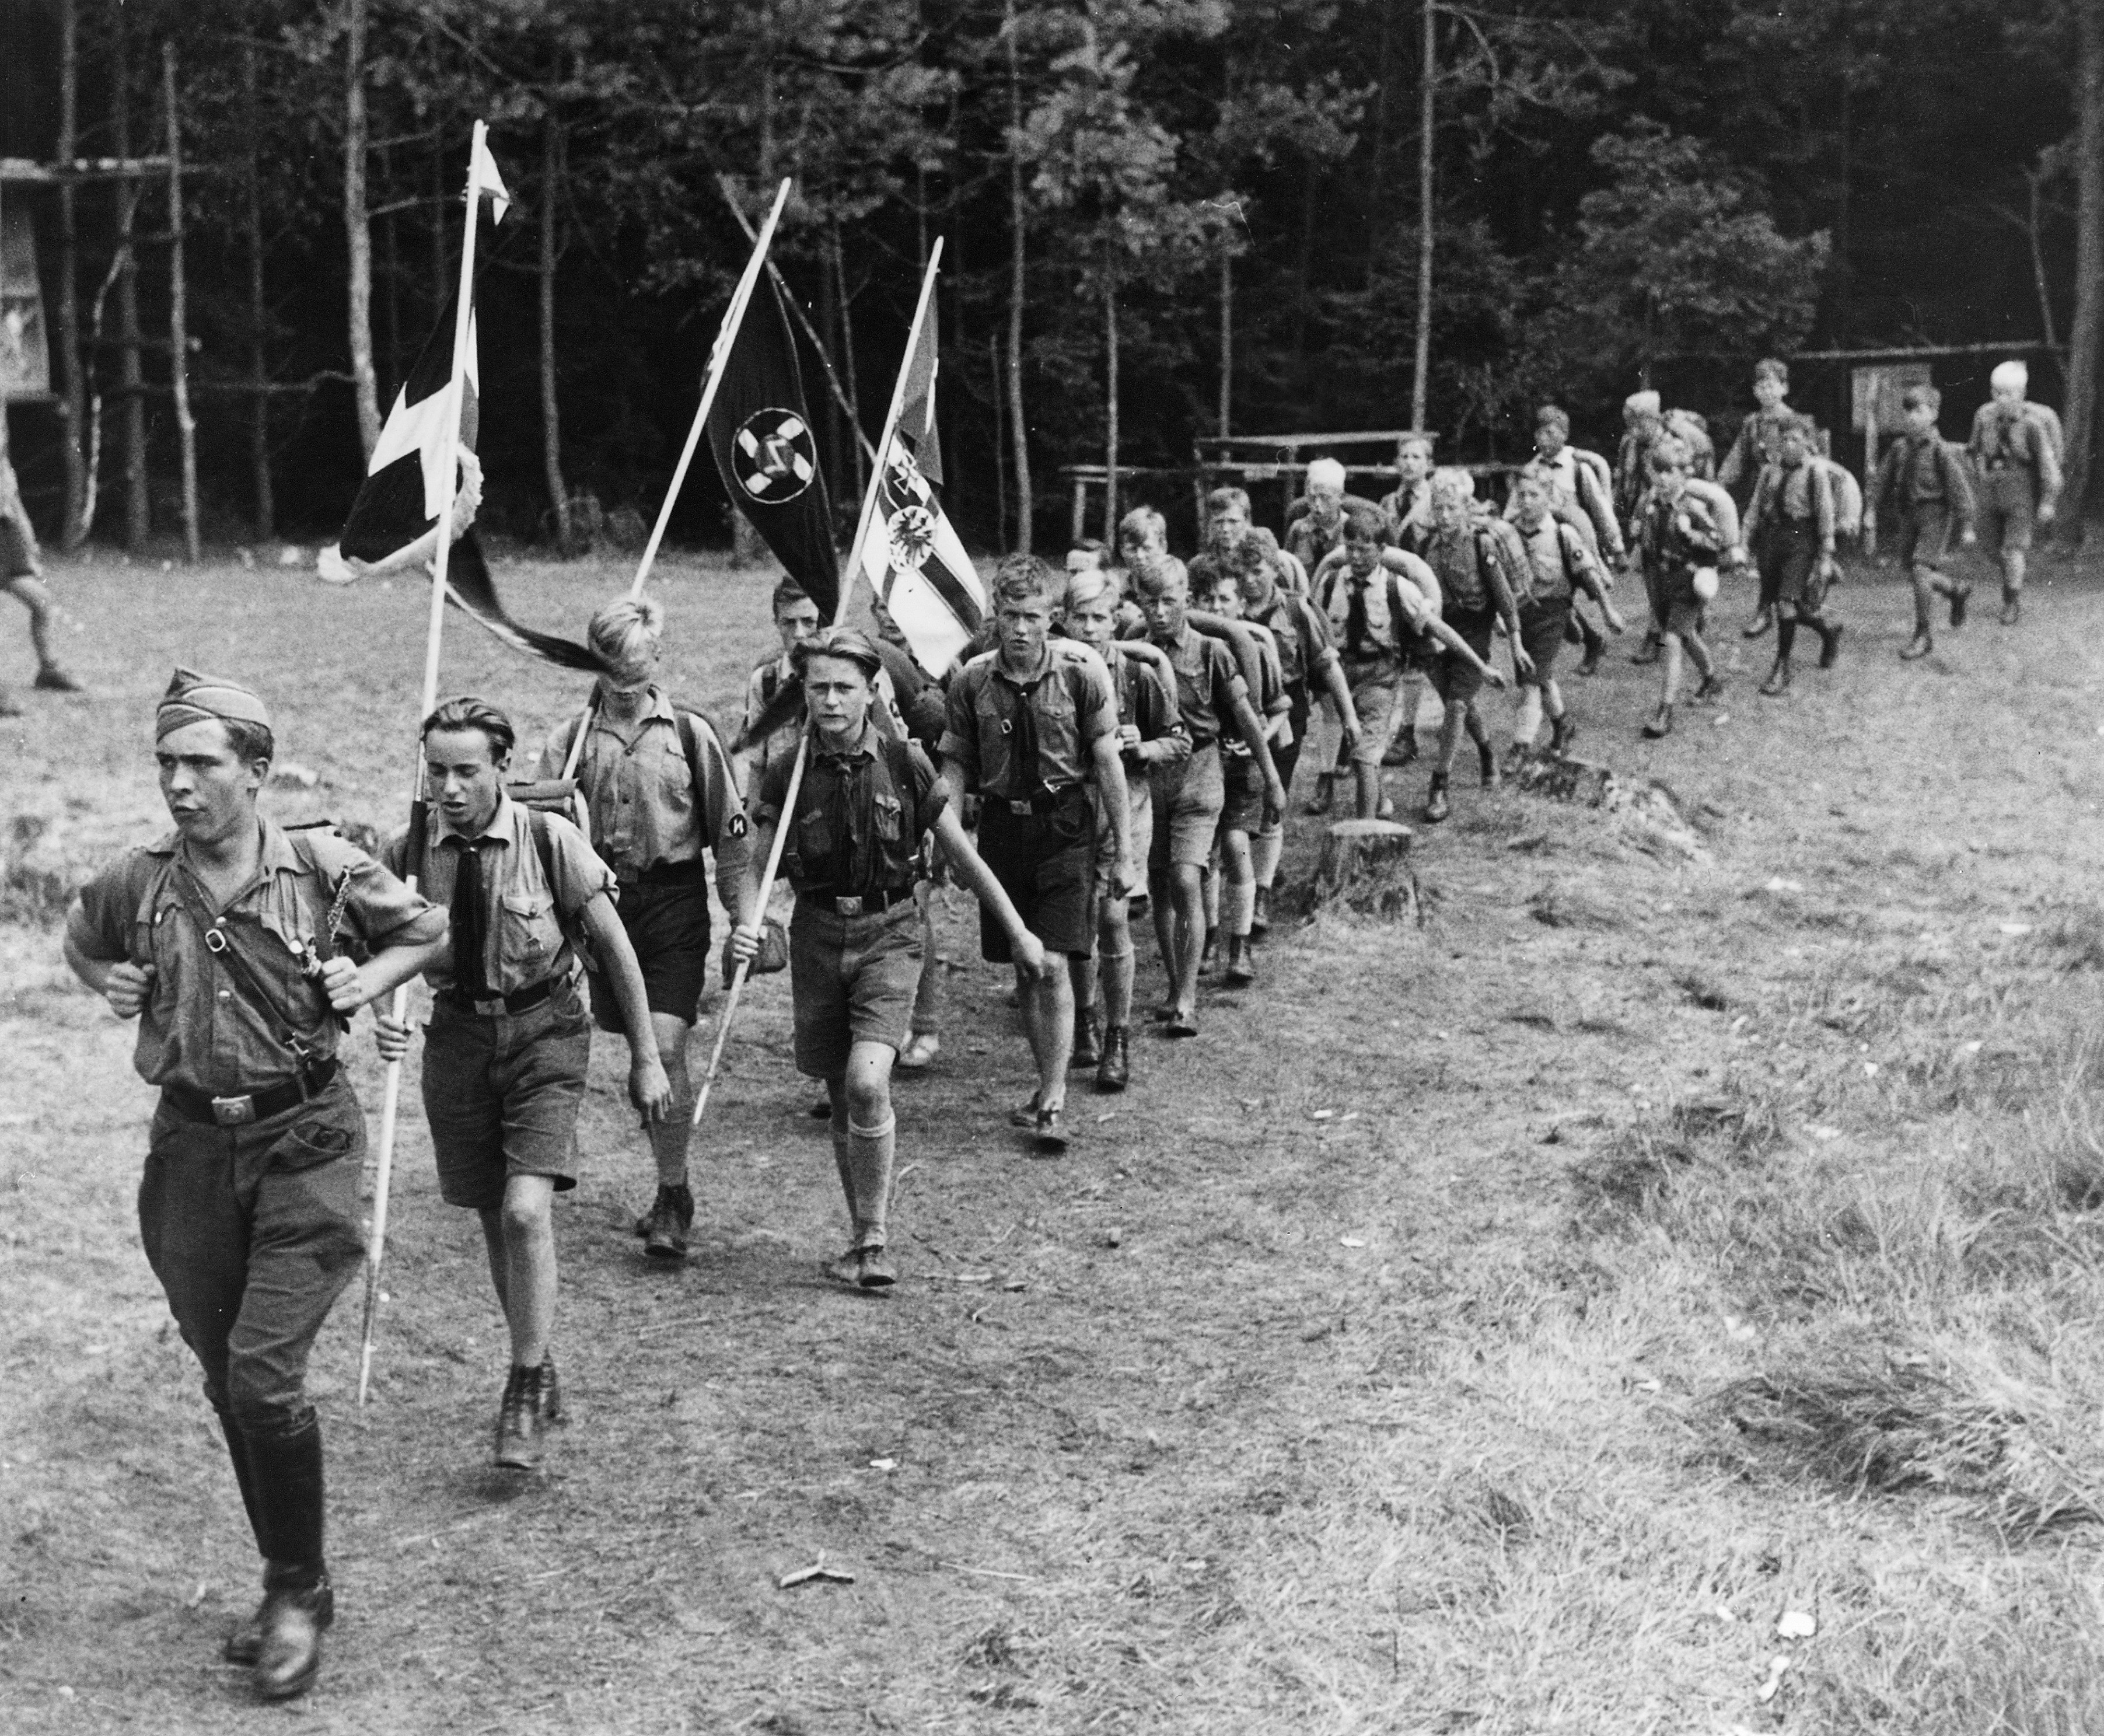 hitler and hitler youth In the early 1920s, the nazi party had established a youth movement to train them to become stormtroopers the group was renamed the hitler youth.